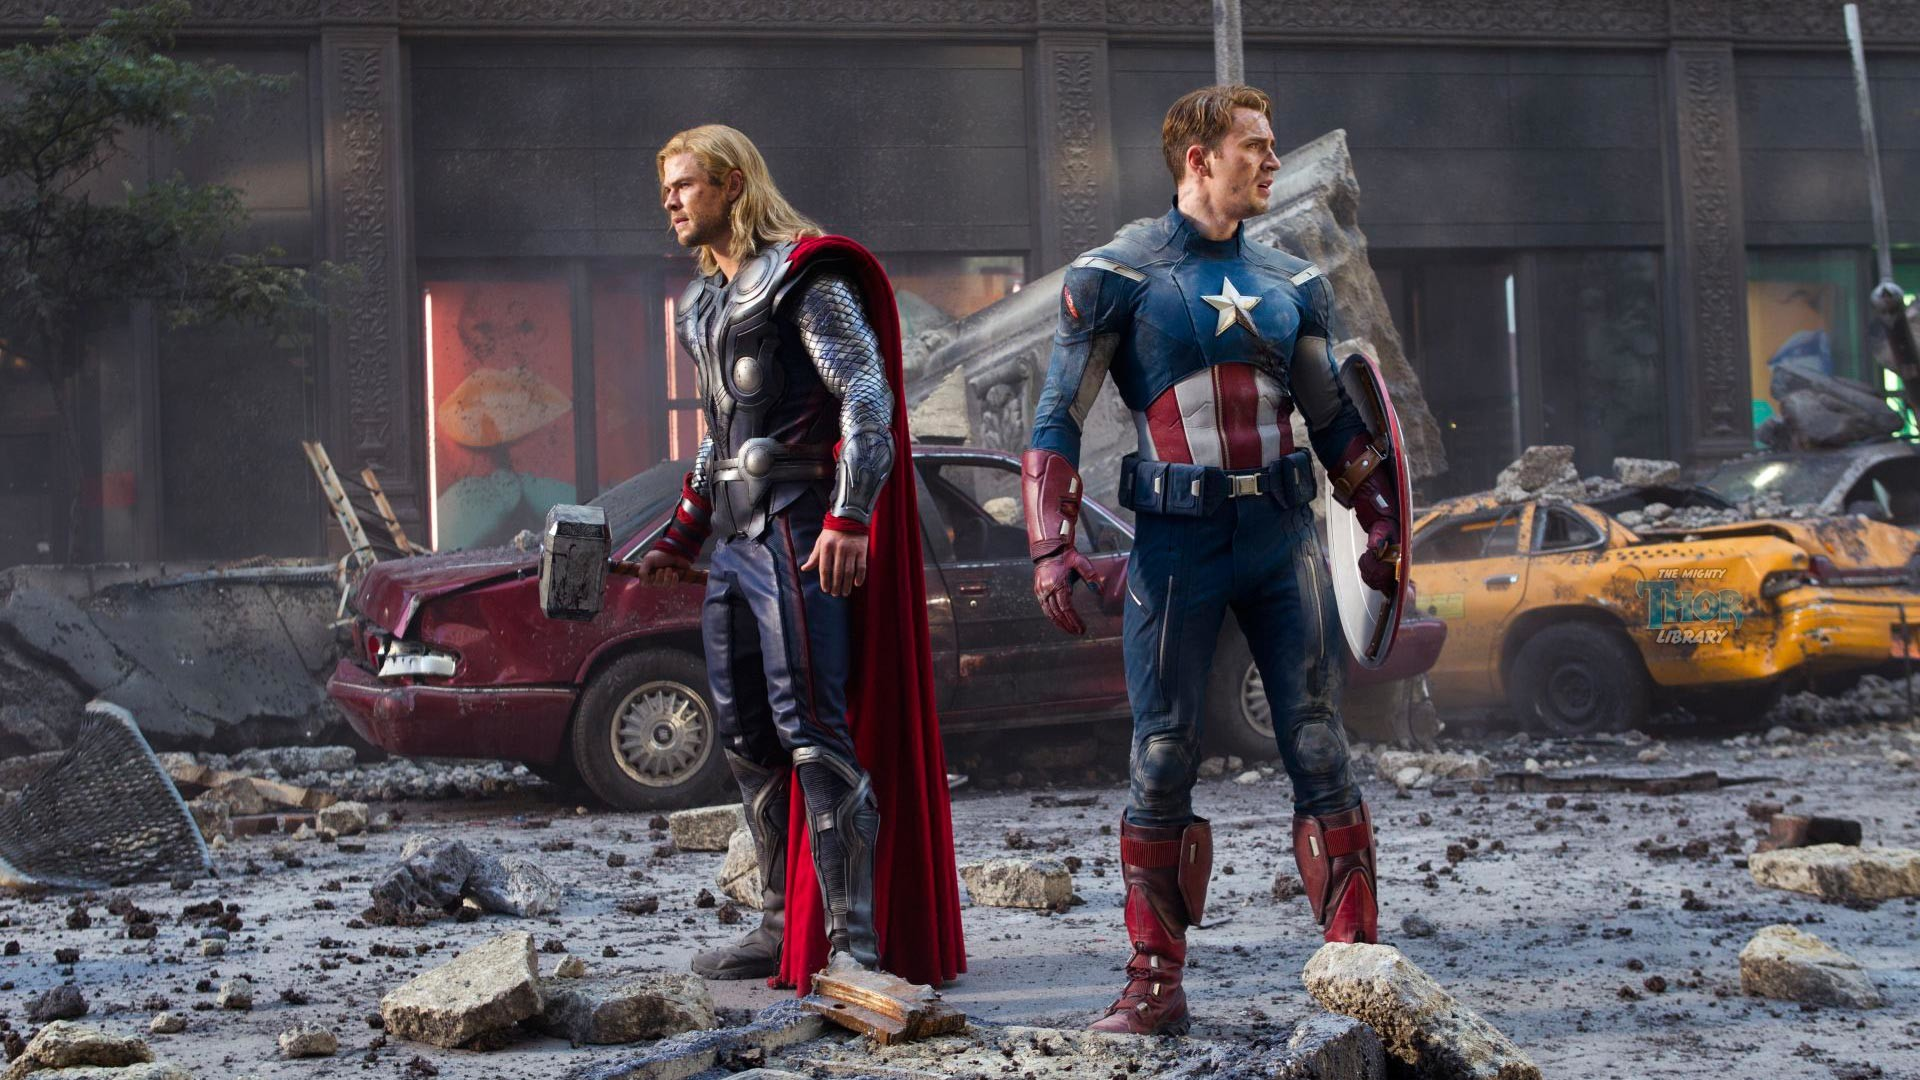 Thor and Captain America in Avengers Movie (1920 x 1080) wallpaper